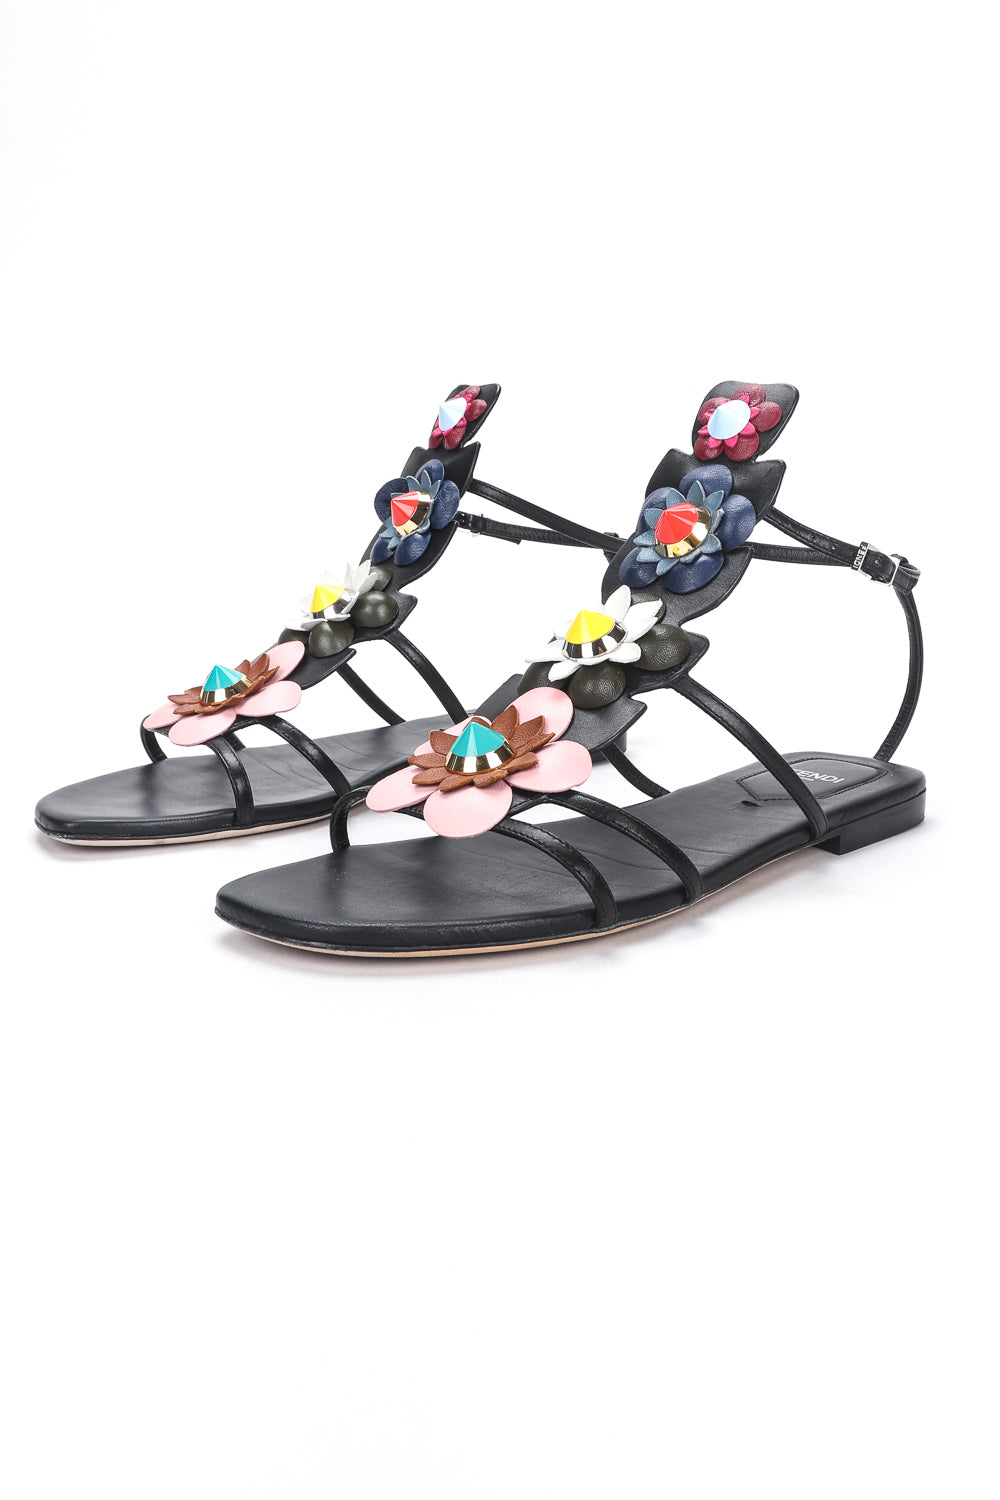 Recess Designer Consignment Vintage Fendi 2016 Flowerland Gladiator Leather Sandals Los Angeles Resale